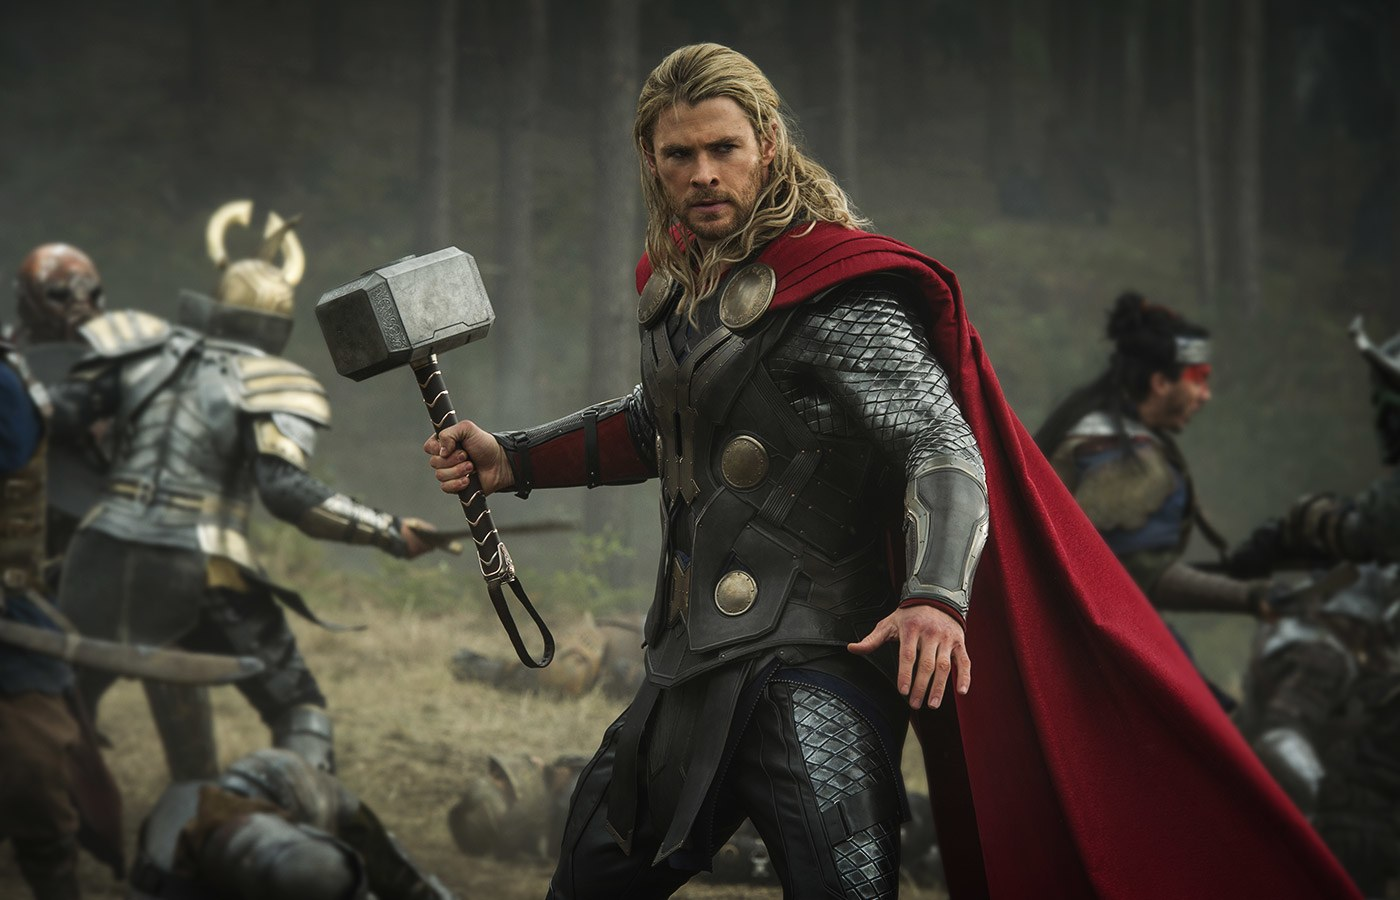 Chris Hemsworth 'doesn't know what the future holds' for Thor after Avengers: Endgame